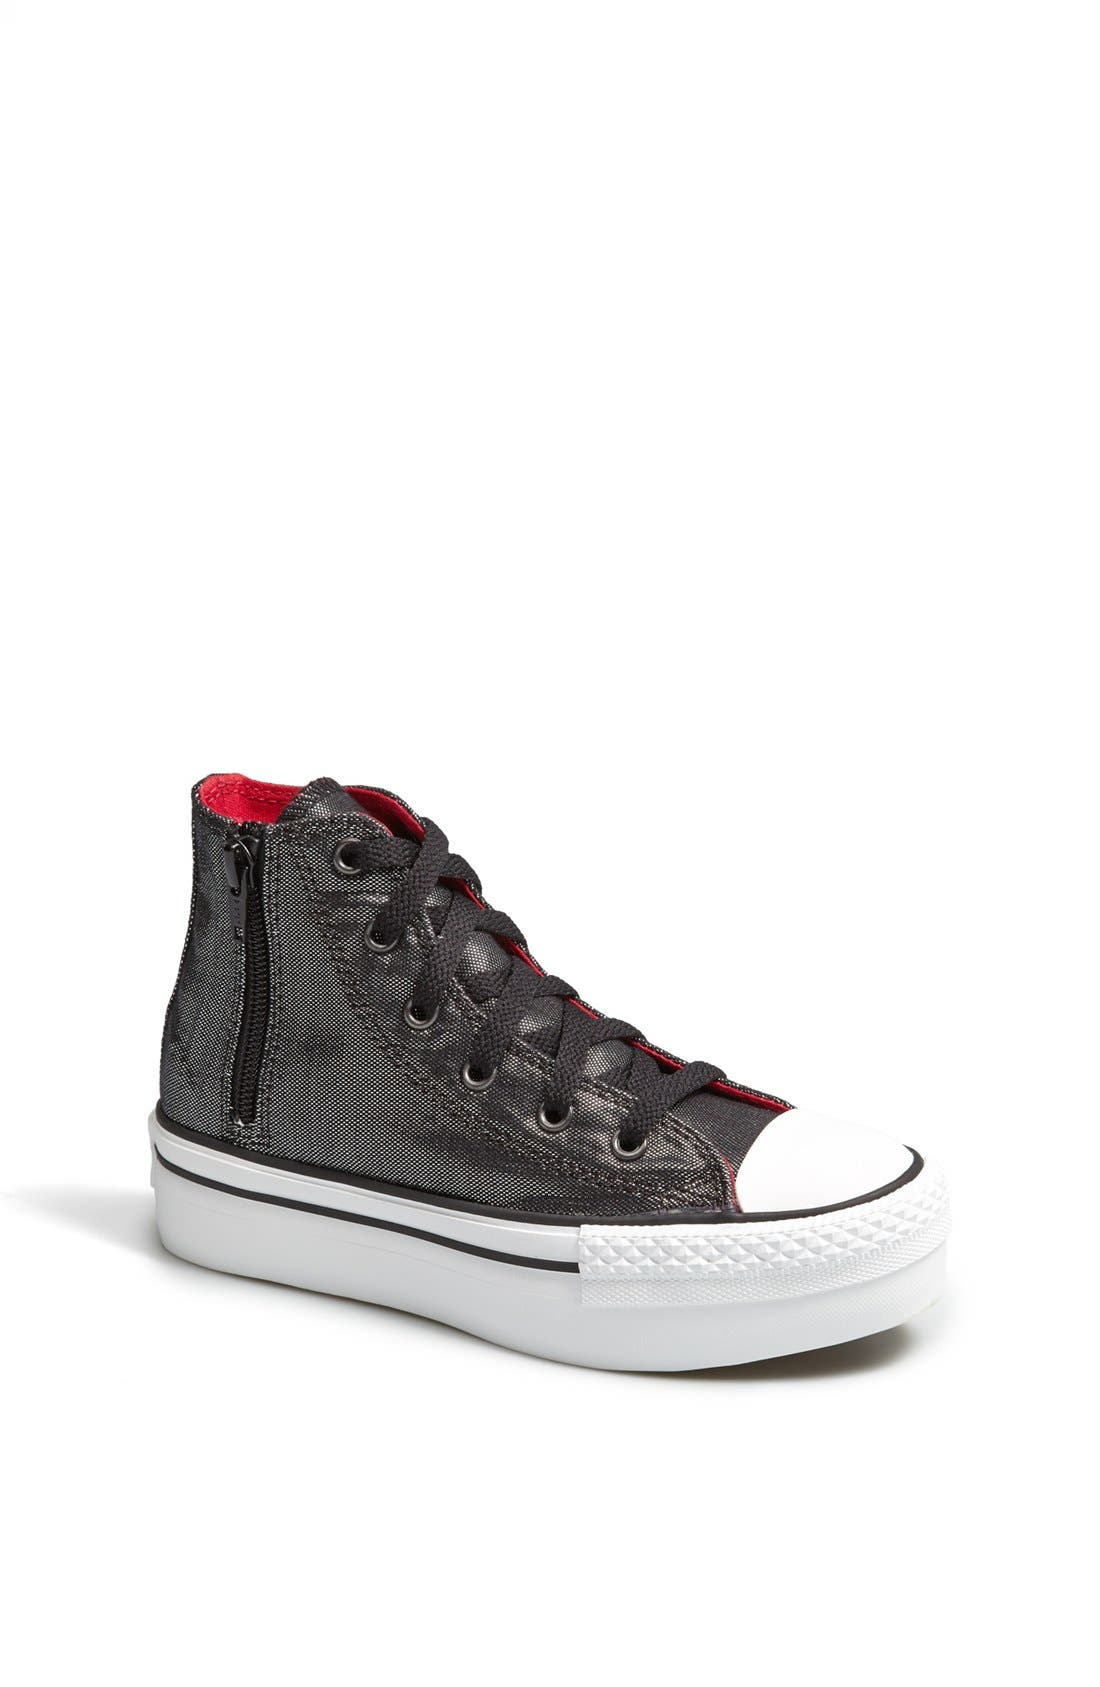 Alternate Image 1 Selected - Converse Chuck Taylor® All Star® 'CT AS' Platform Zip Sneaker (Toddler, Little Kid & Big Kid)